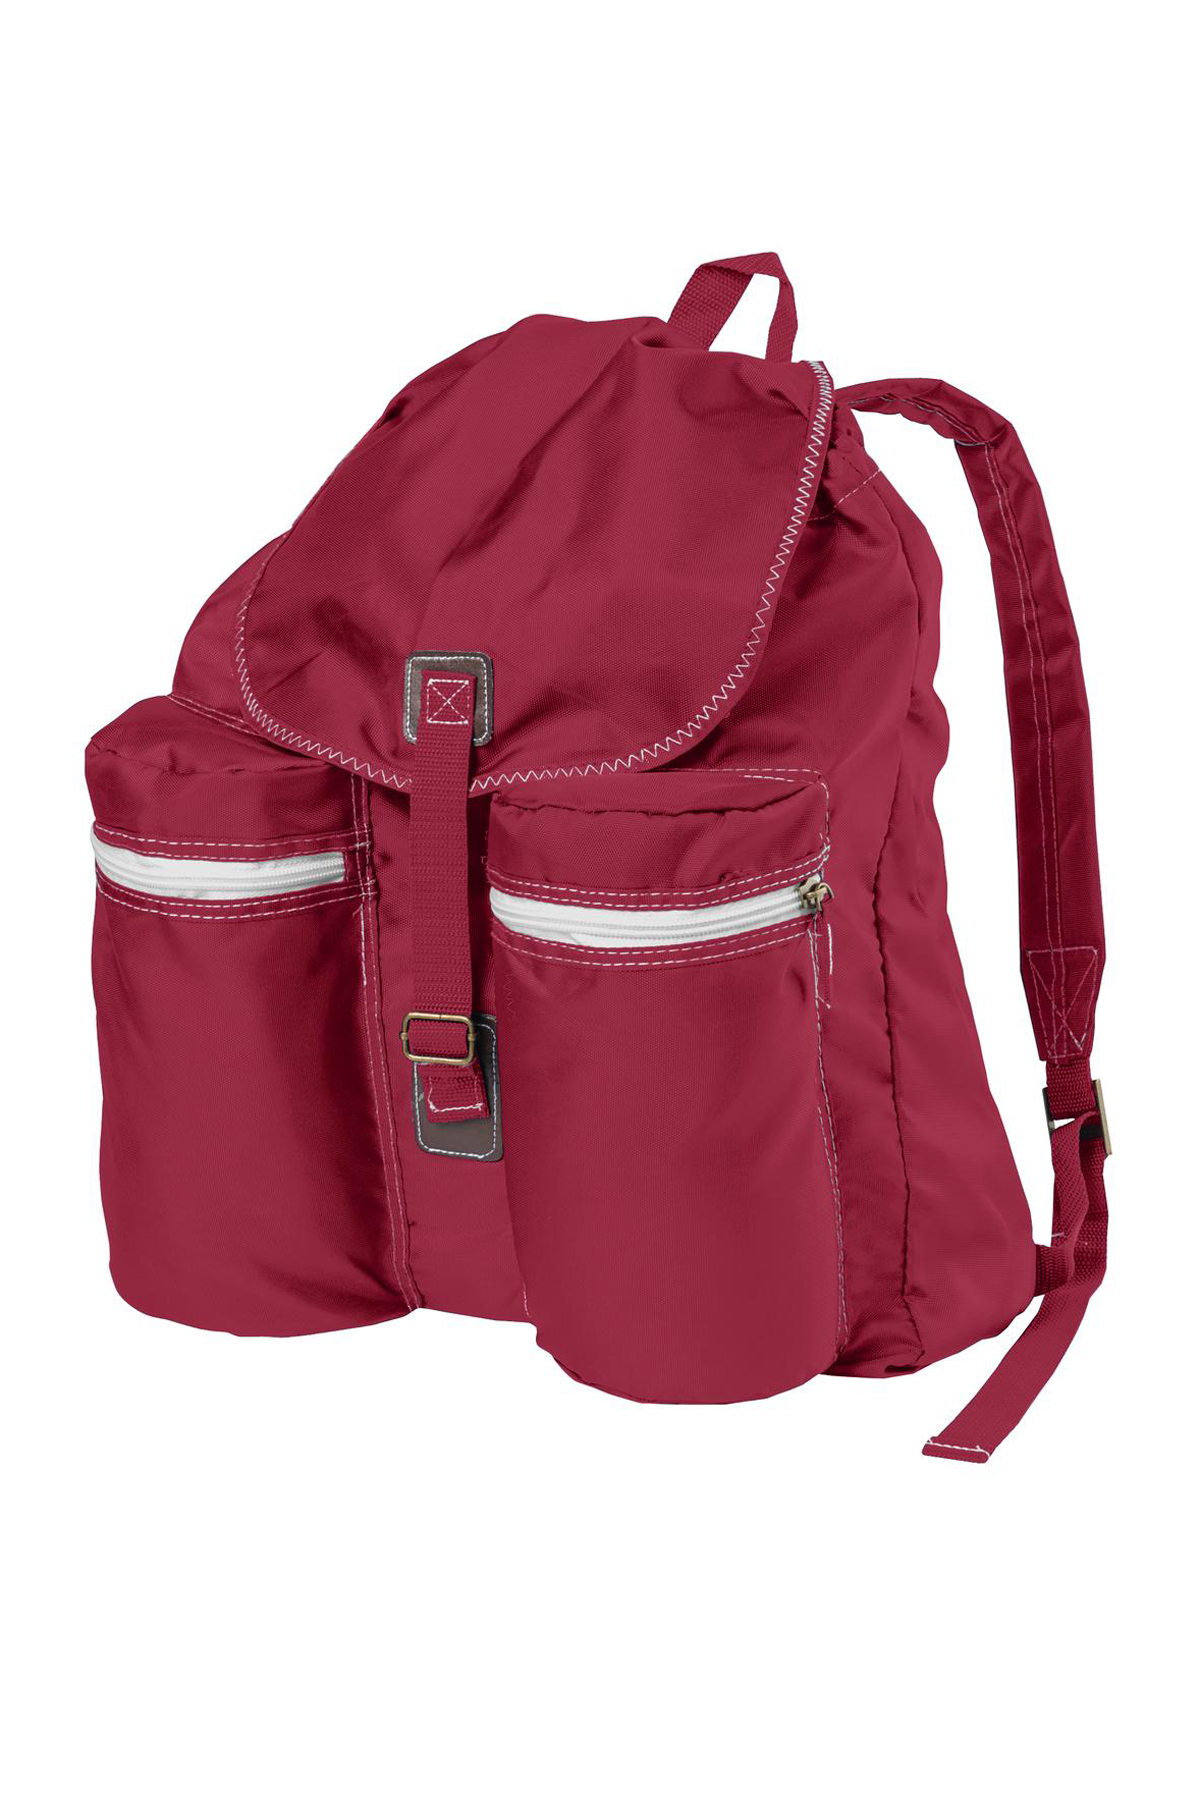 Bags-Backpacks-31